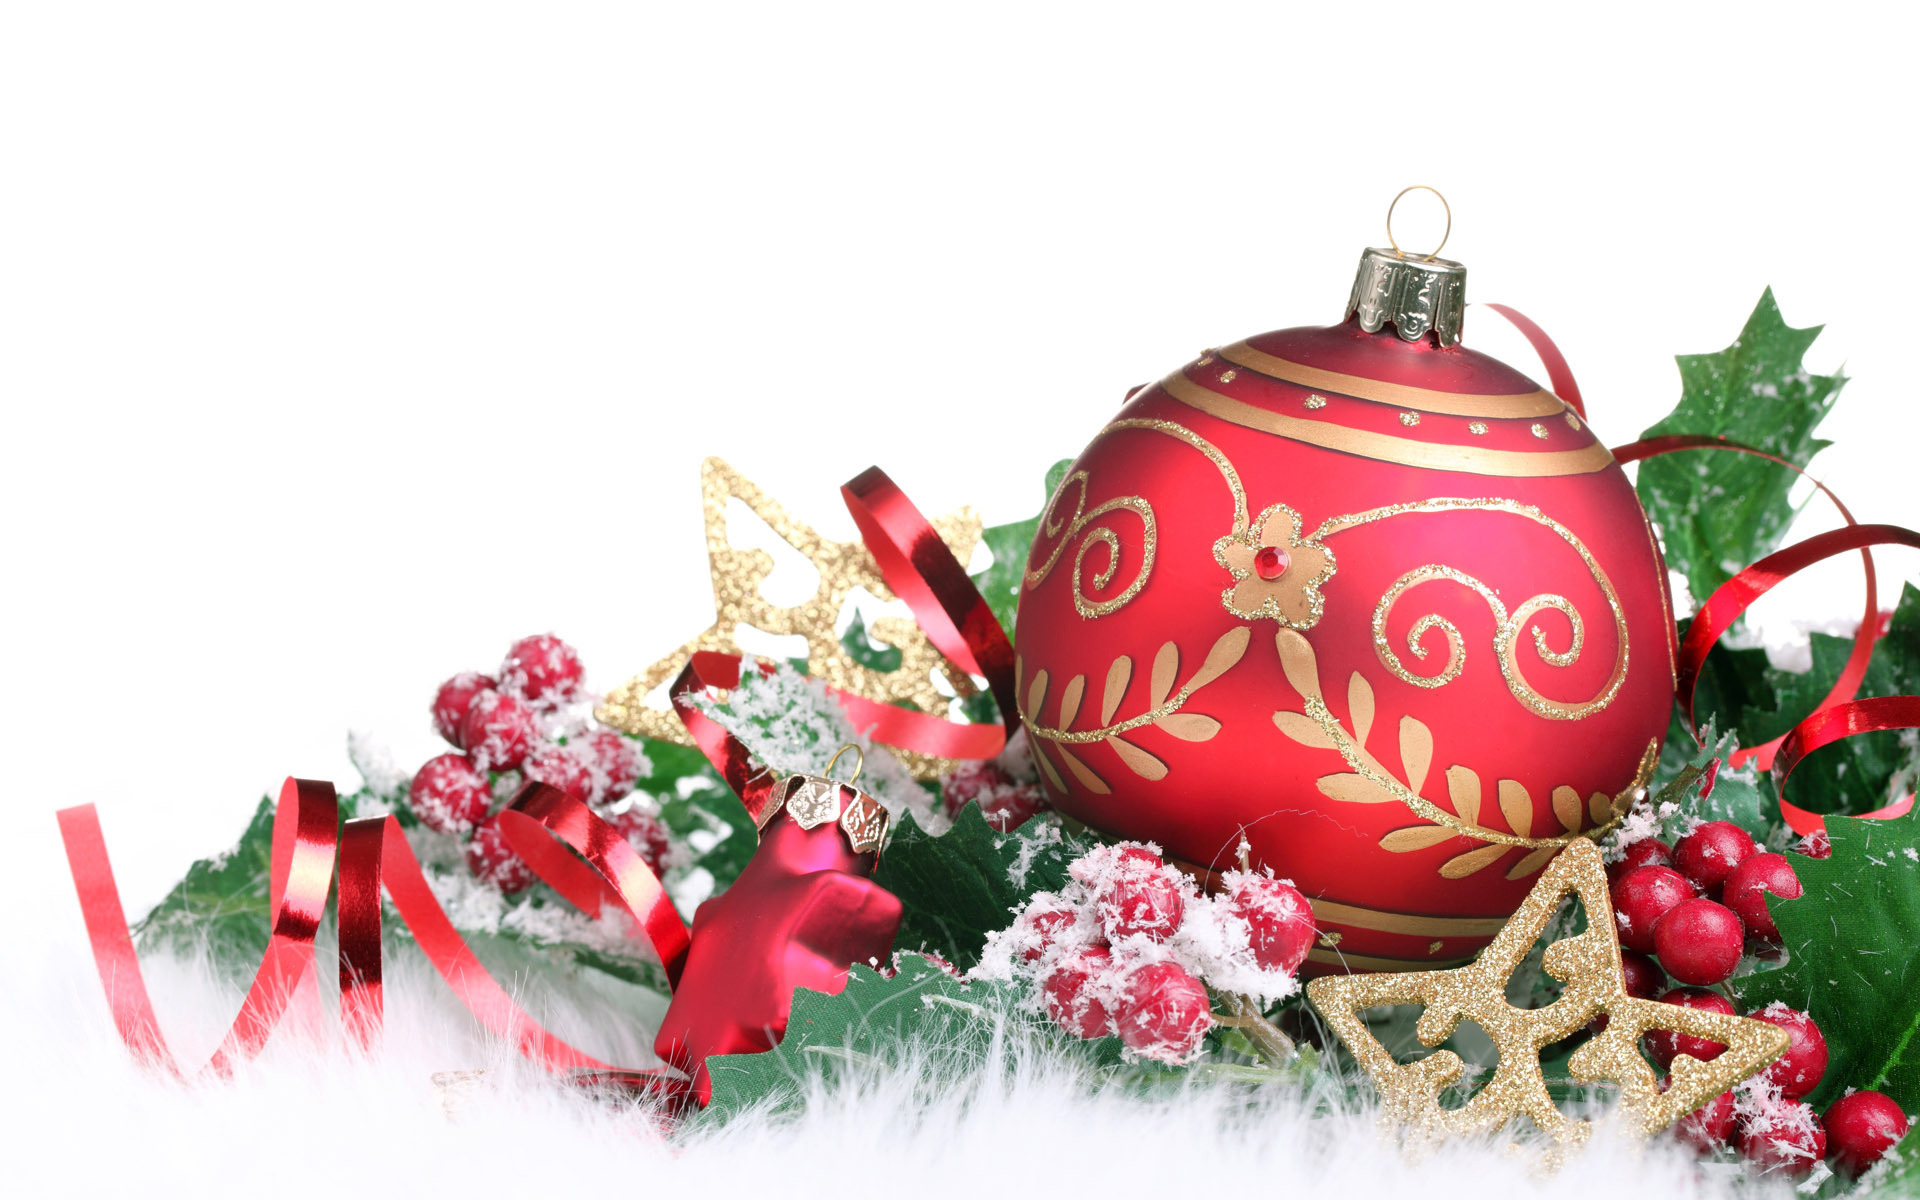 Red Christmas decorations - Christmas Wallpaper (22228016 ...